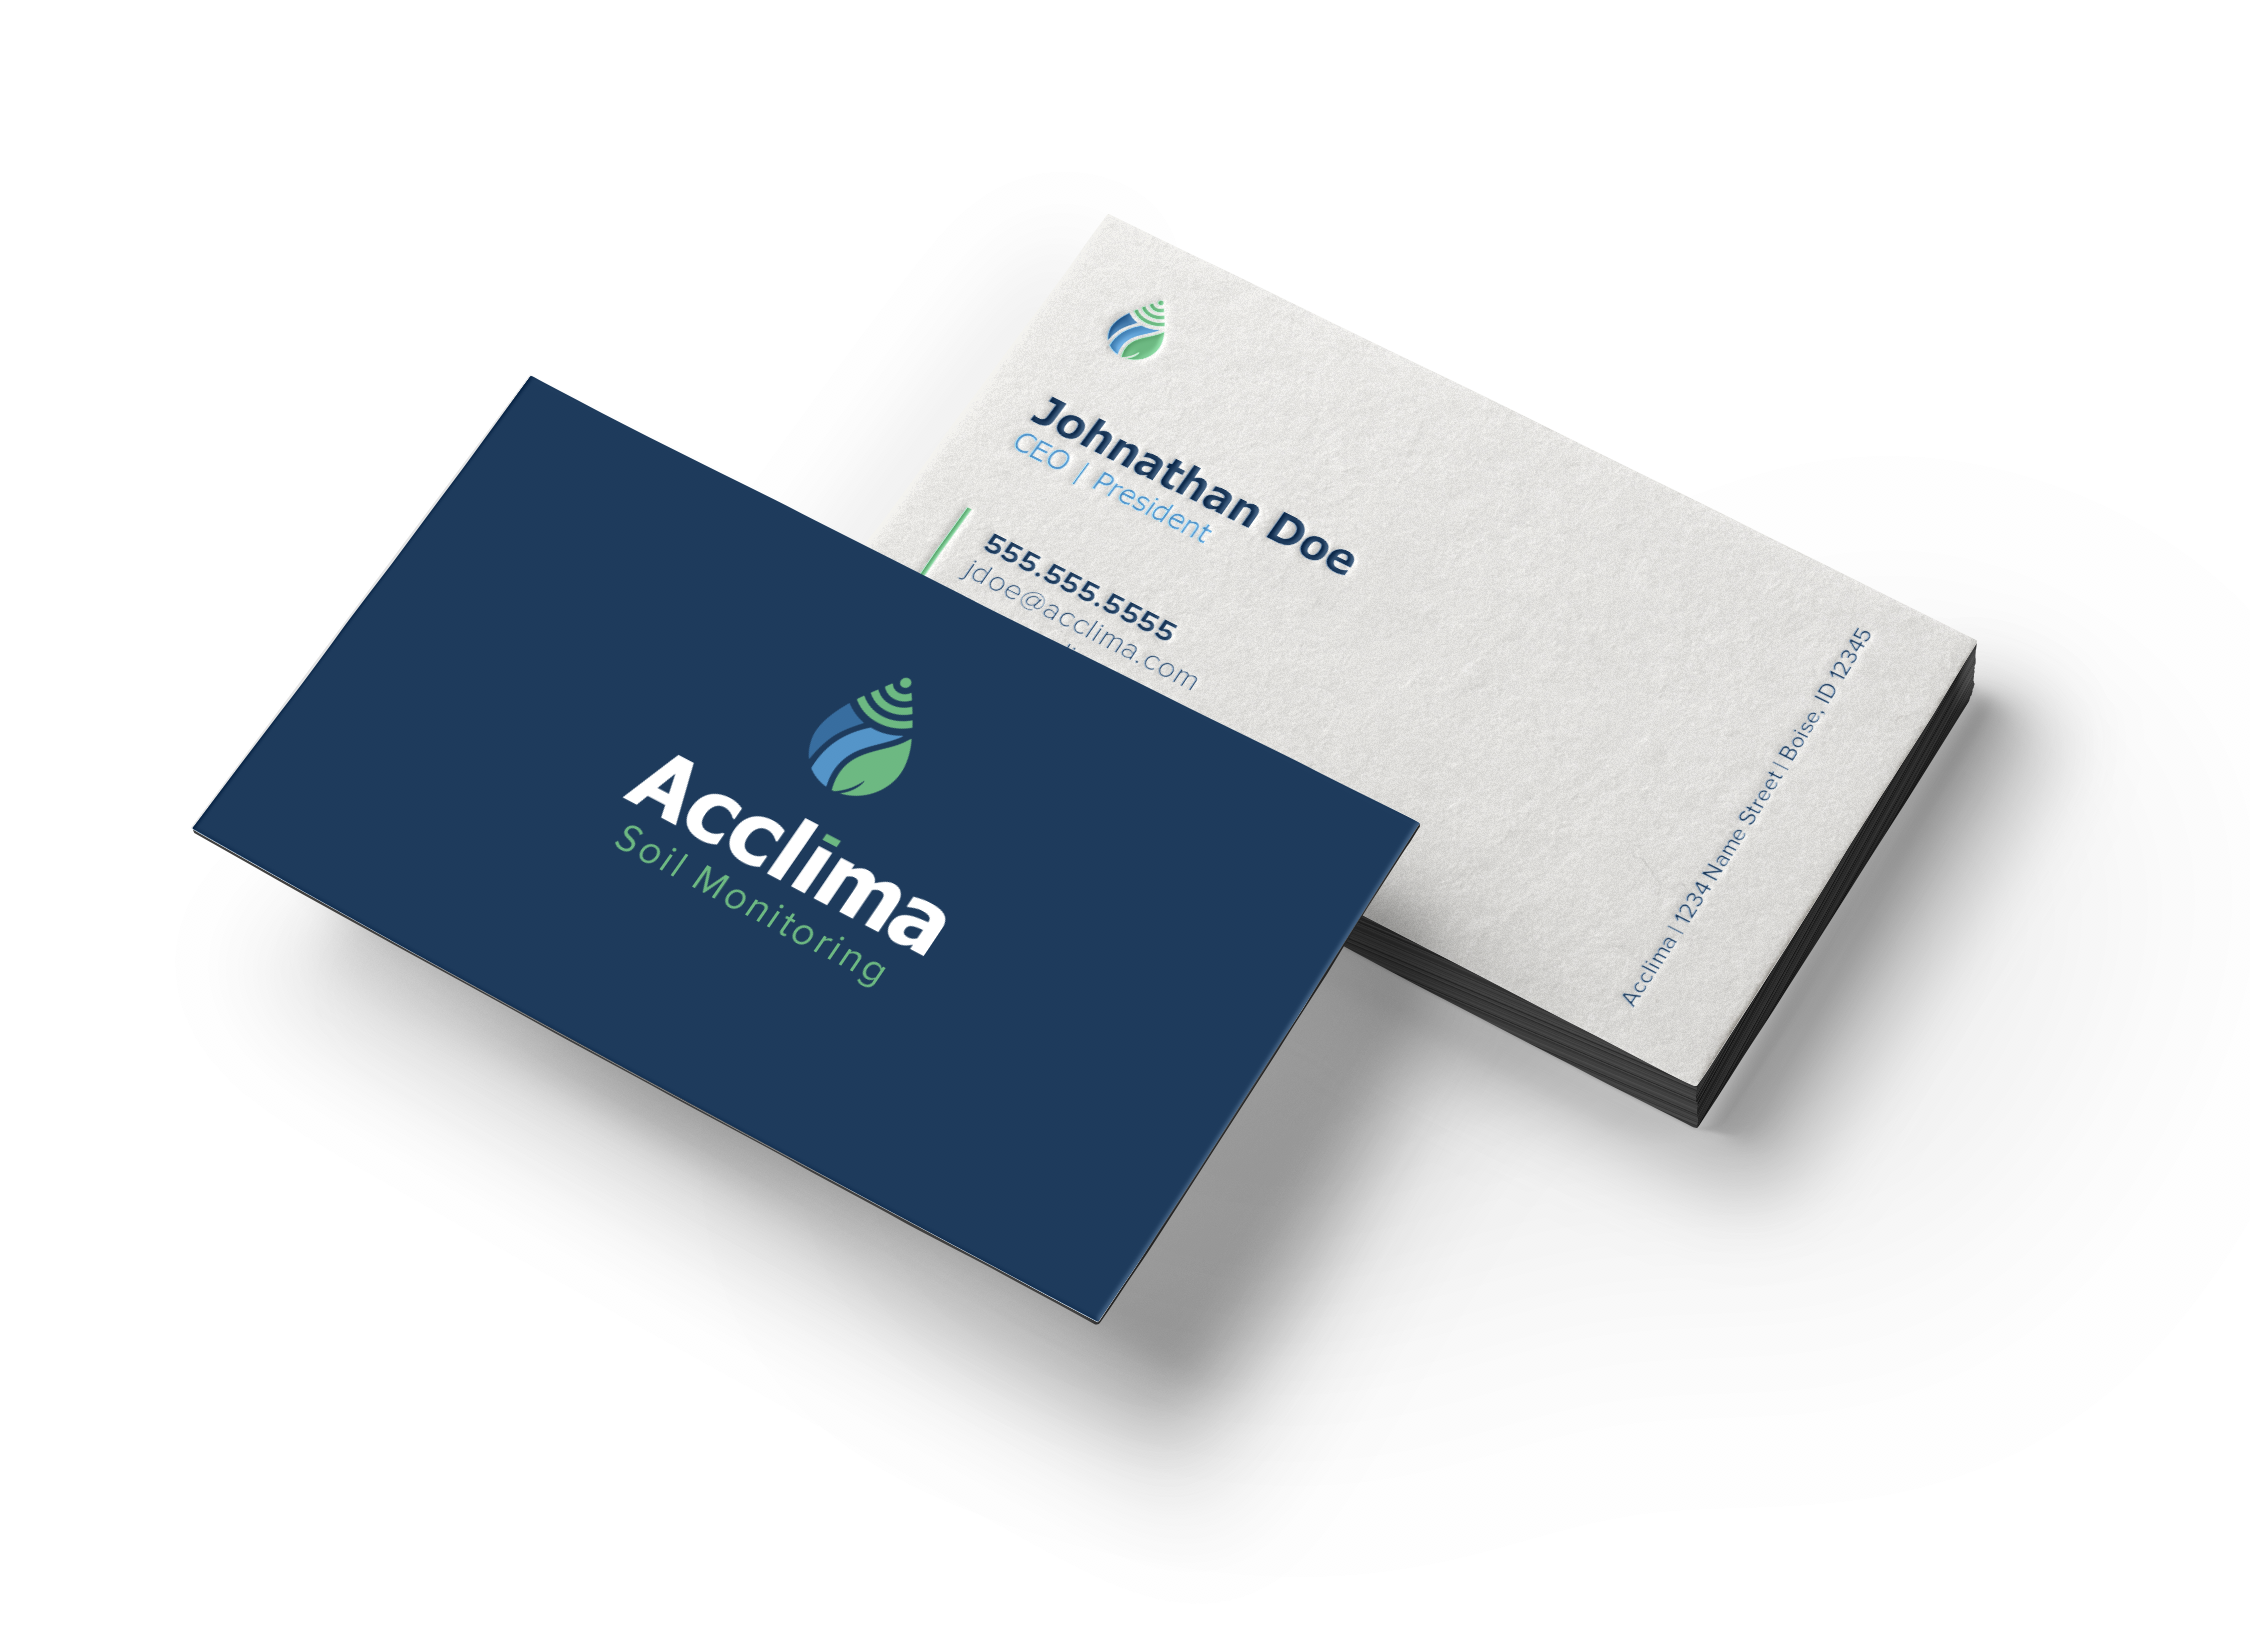 Acclima Business Card